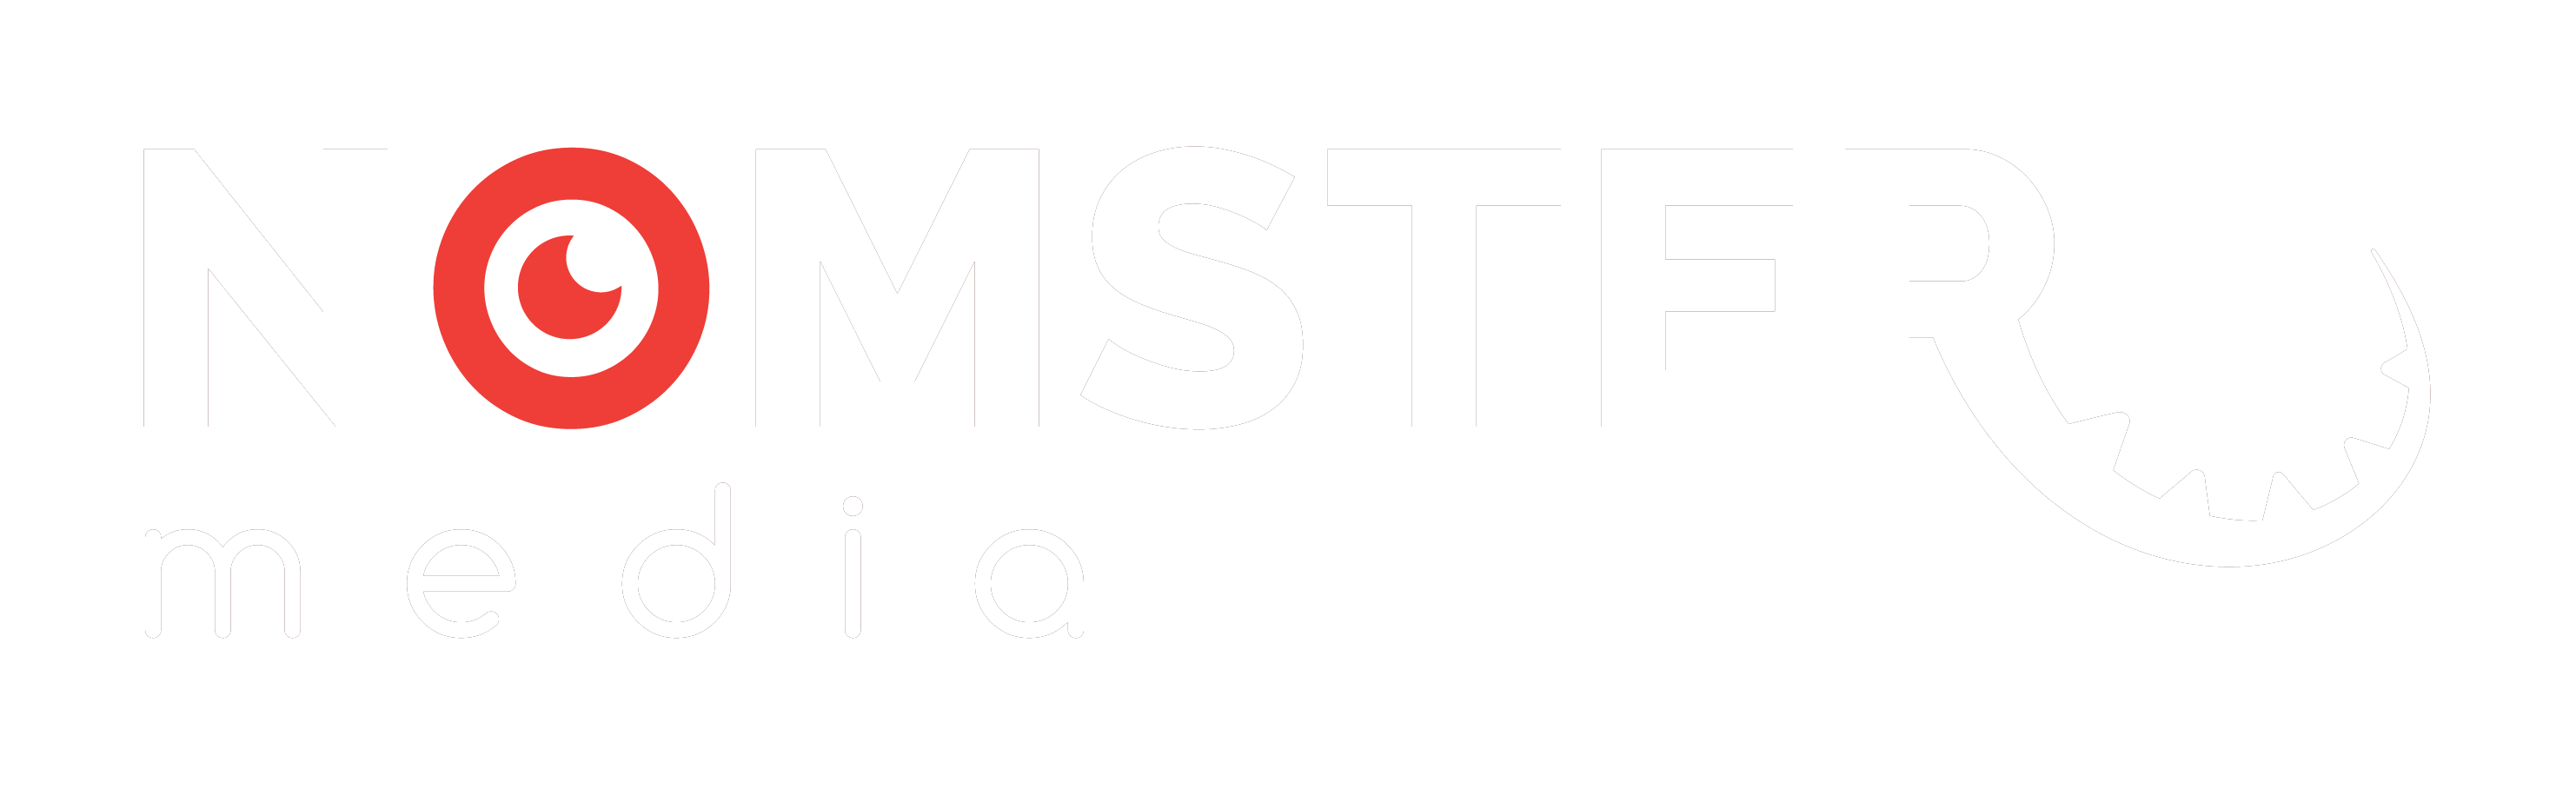 Nomster Media - Singapore's Best Digital Services & Creative Solutions